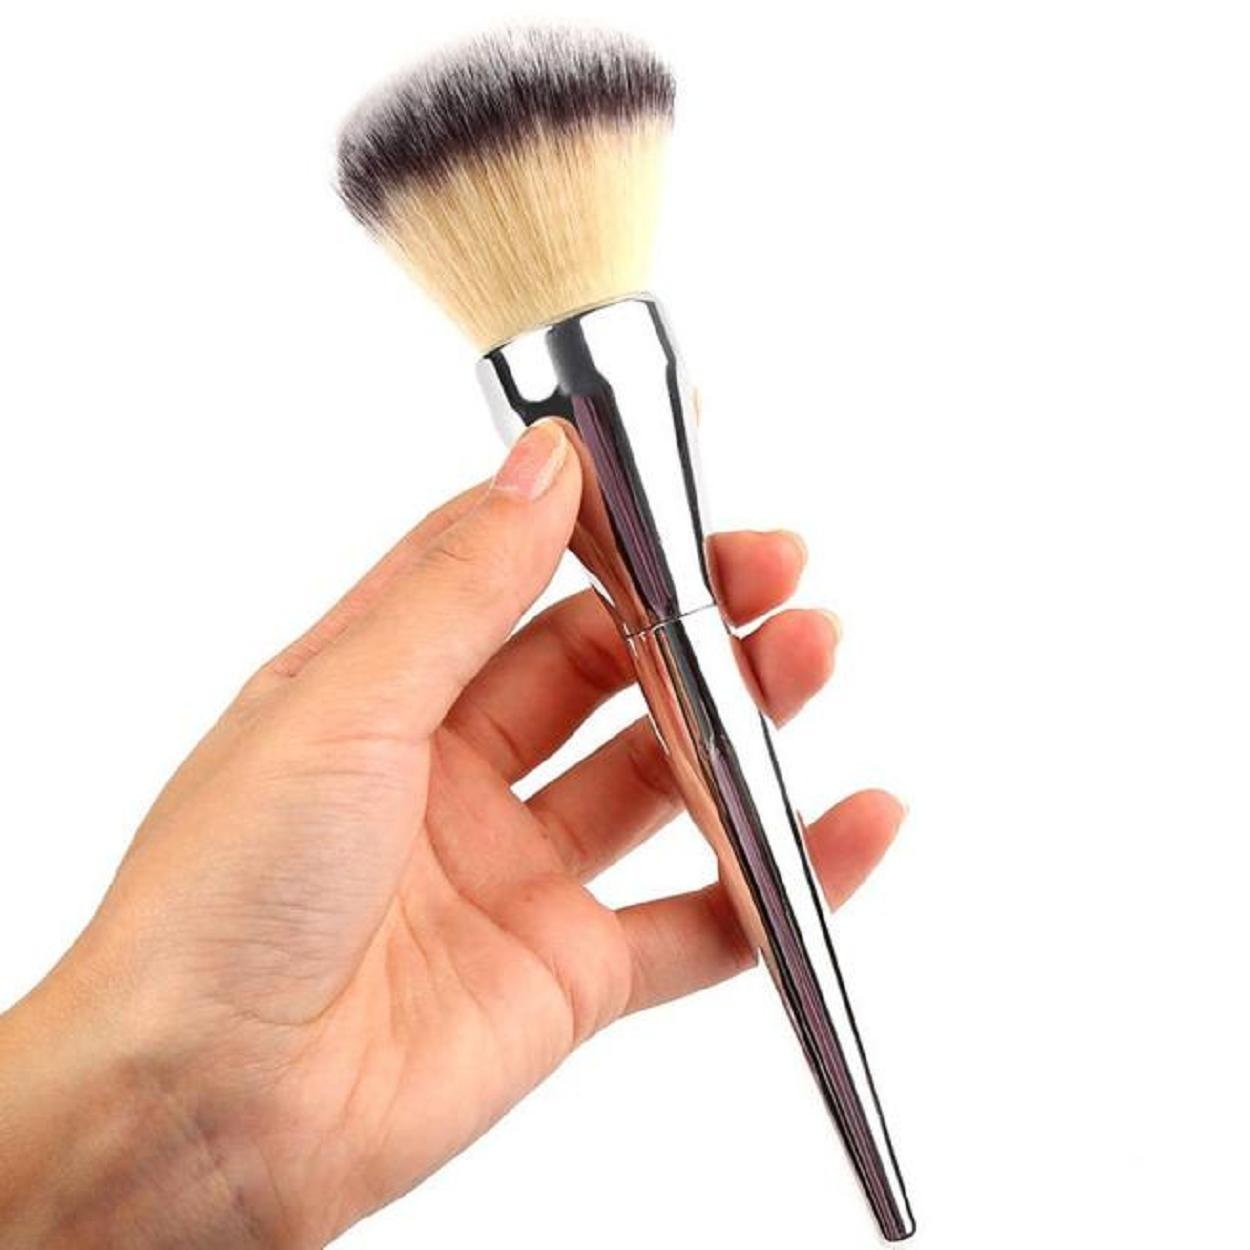 Kingfansion Makeup Cosmetic Brushes Kabuki Face Blush Brush Powder Foundation Tool